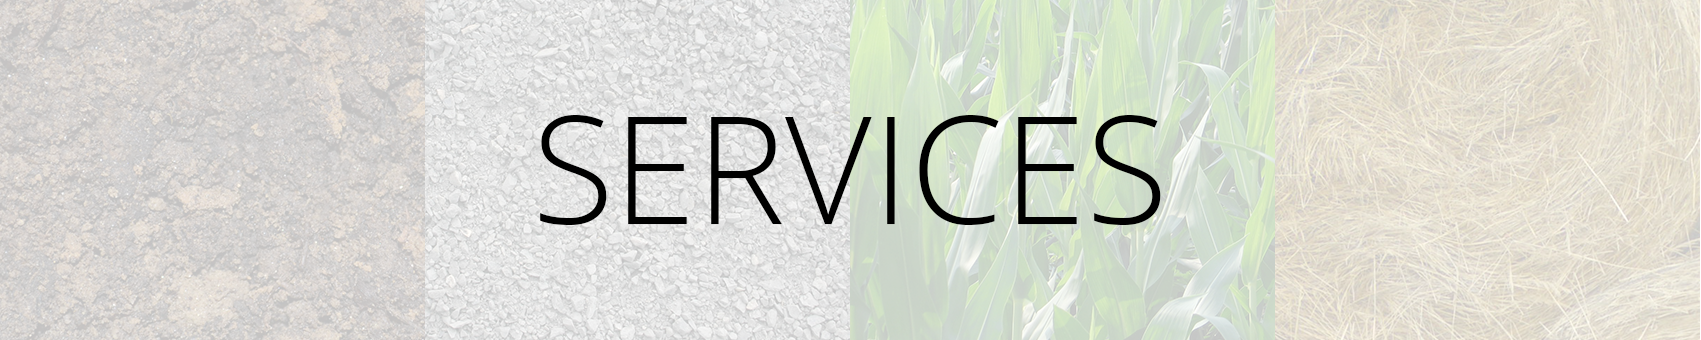 Services Banner Image